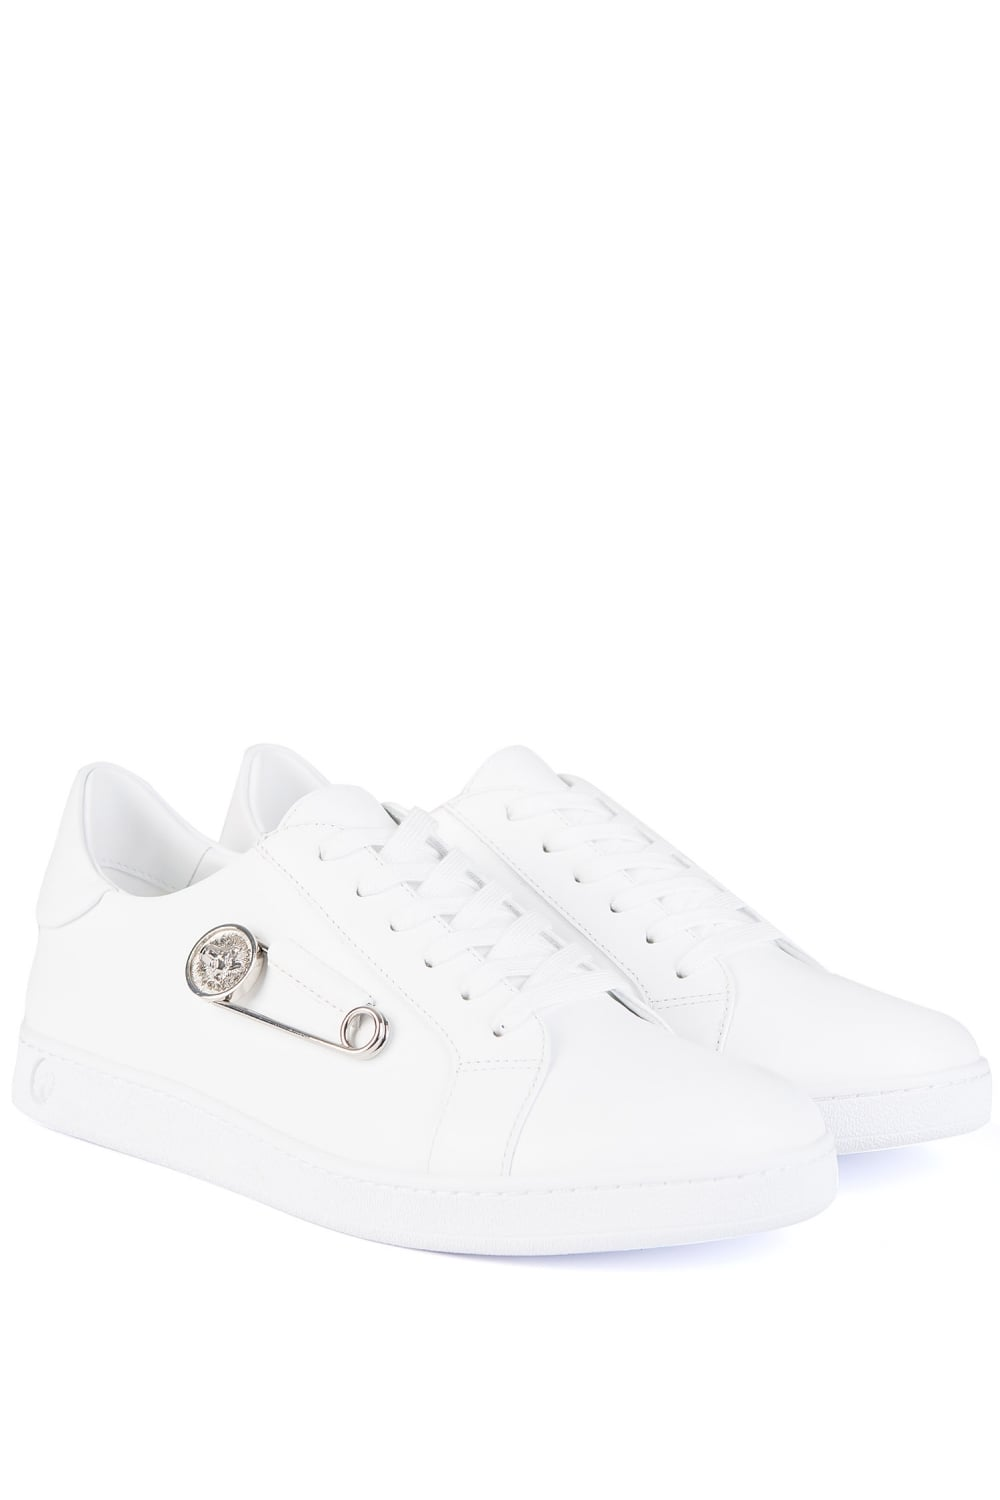 more photos outlet store sale retail prices Versace Versus Safety Pin Sneakers White